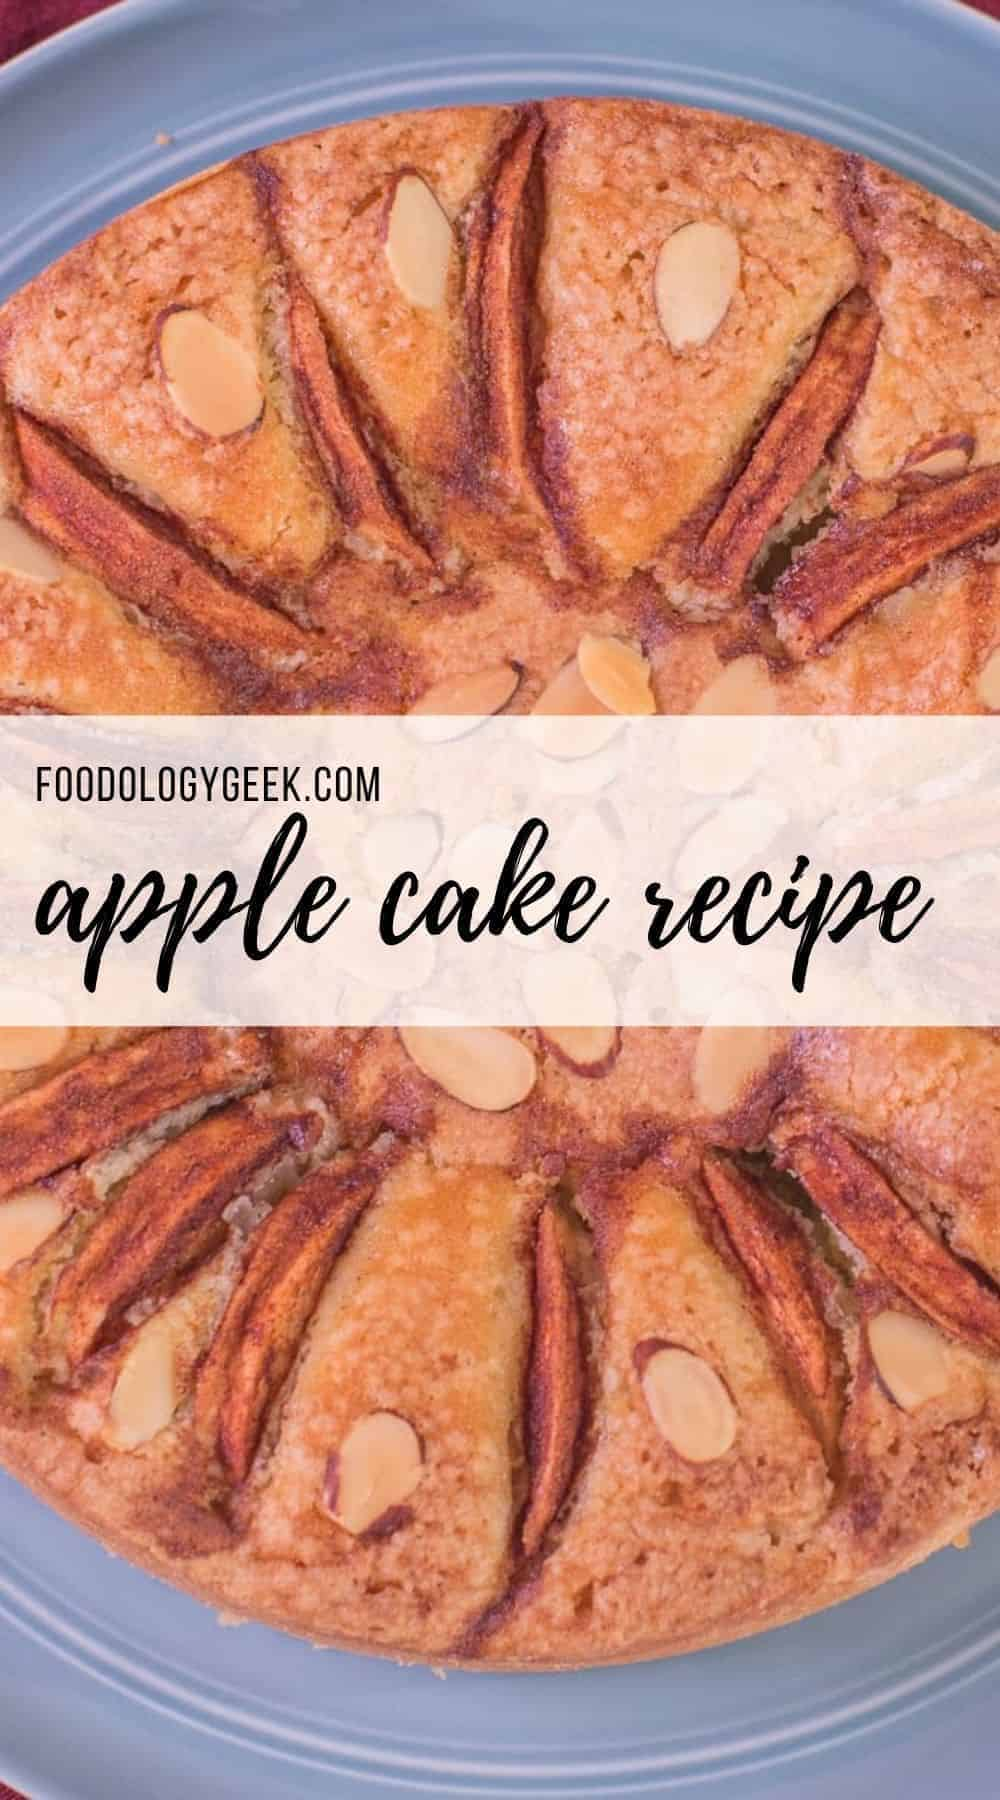 This apple cake recipe is everything that apple cake be. It has a lovely apple flavor and the perfect amount of spics. I serve this recipe with a decadent vanilla pastry cream!